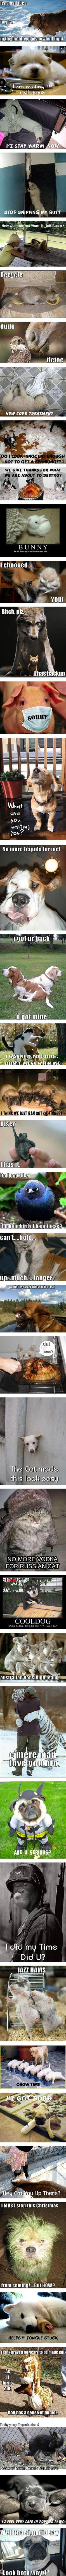 60 Funniest Animal Pictures With Captions #funnydogwithcaptions